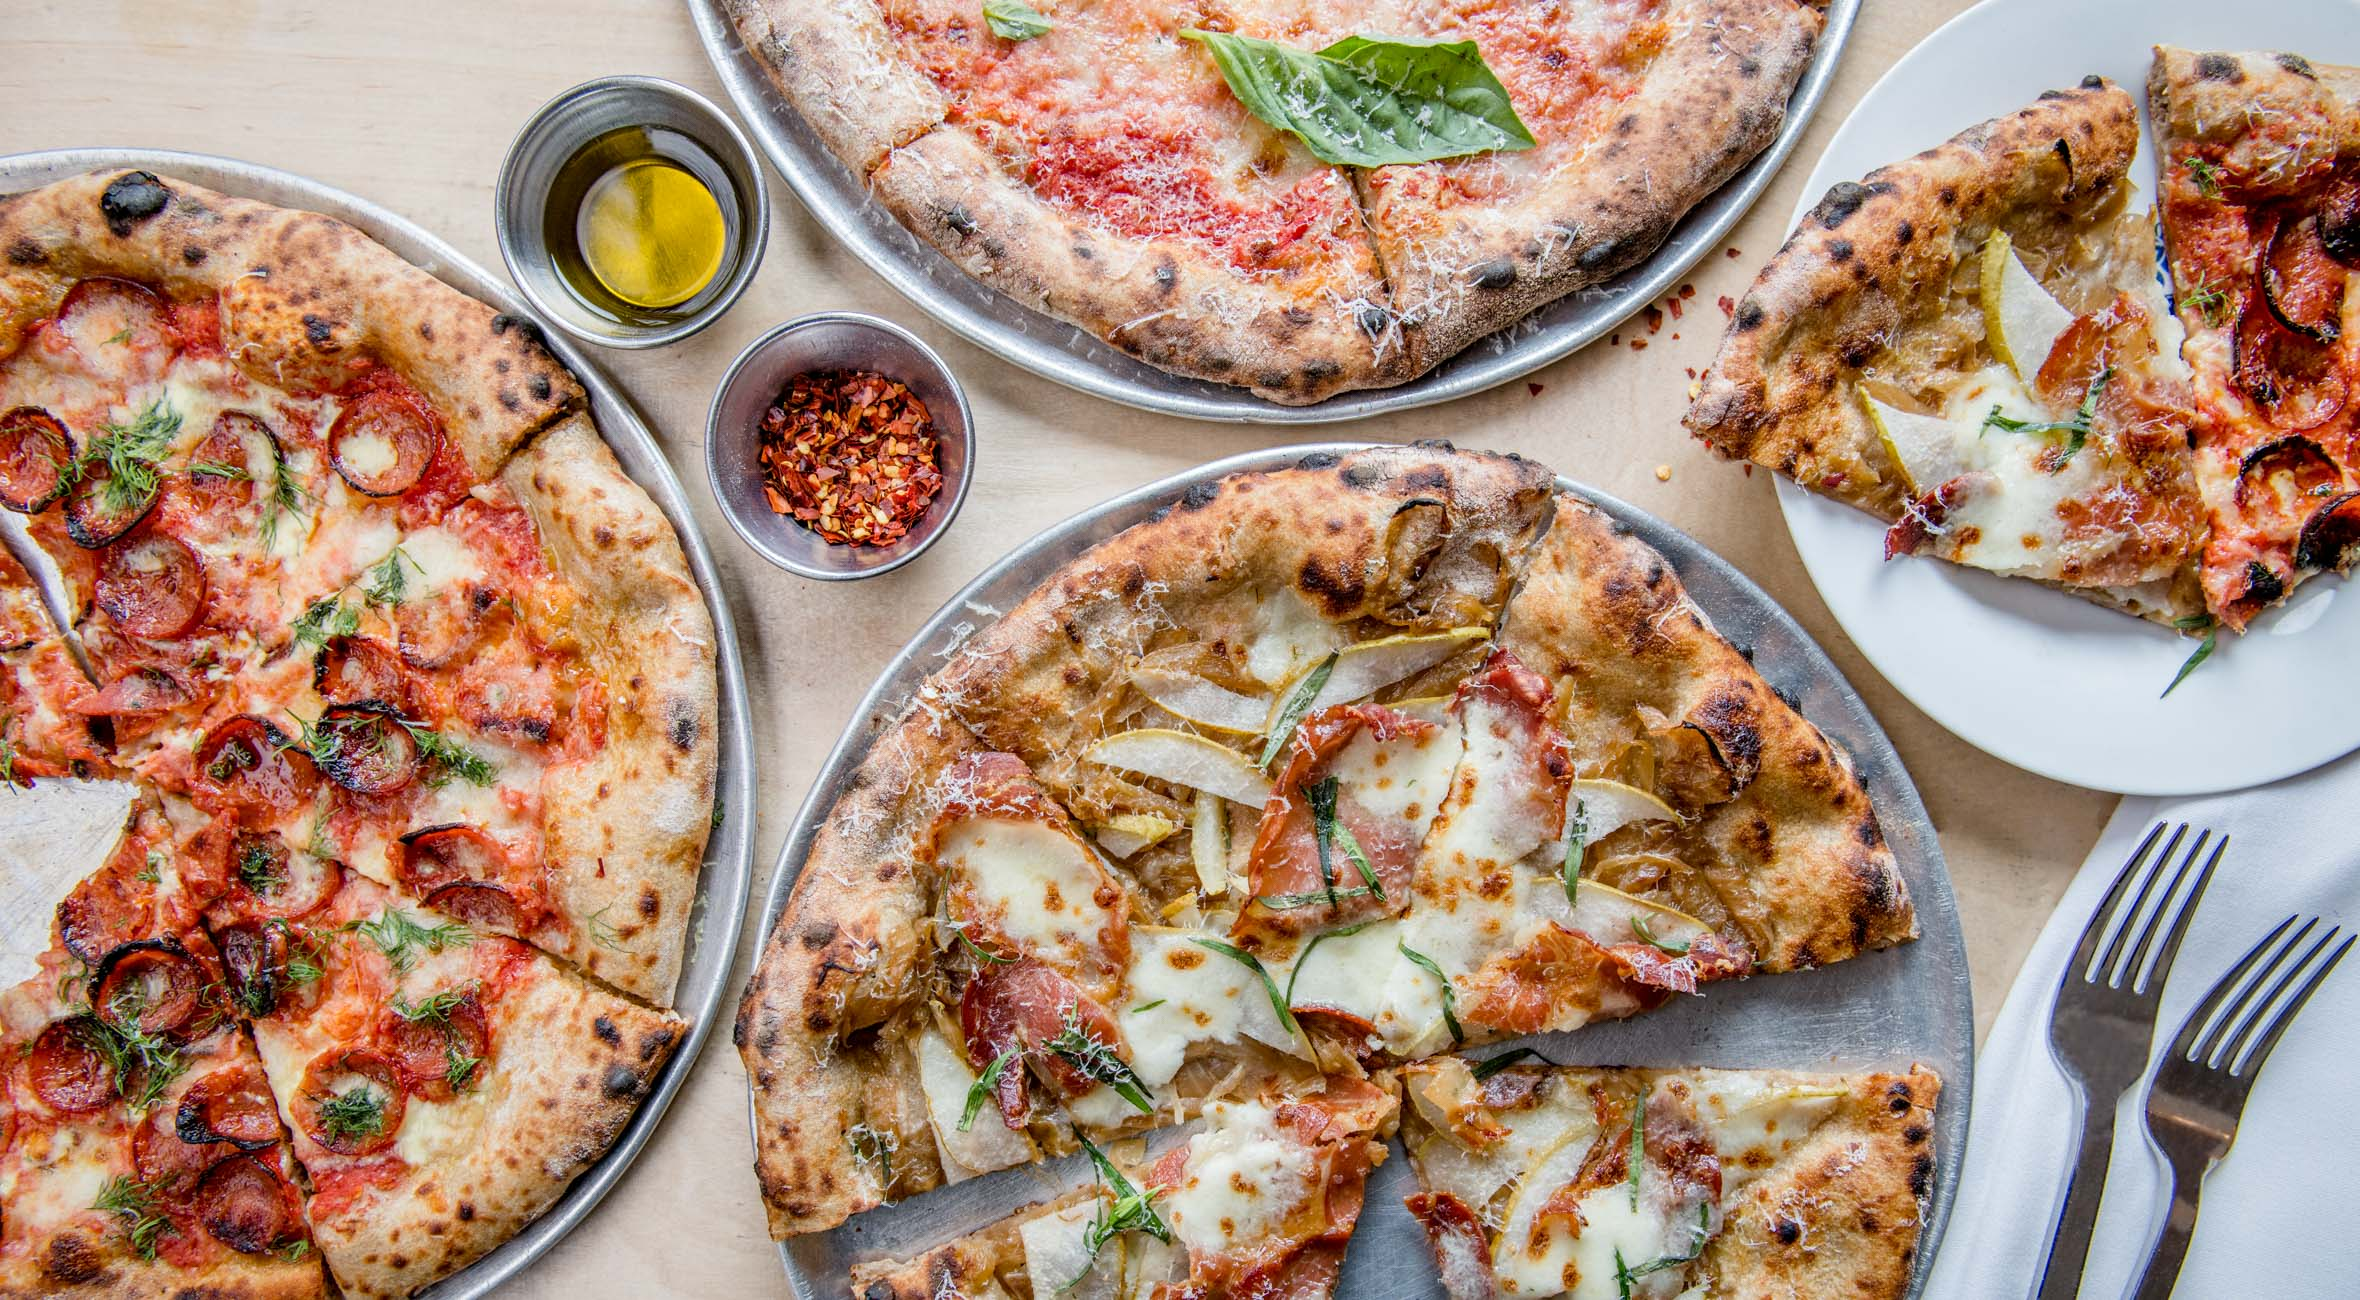 Two Pizzas of Your Choice at Bruno Pizza in East Village – Recommended by Michelin